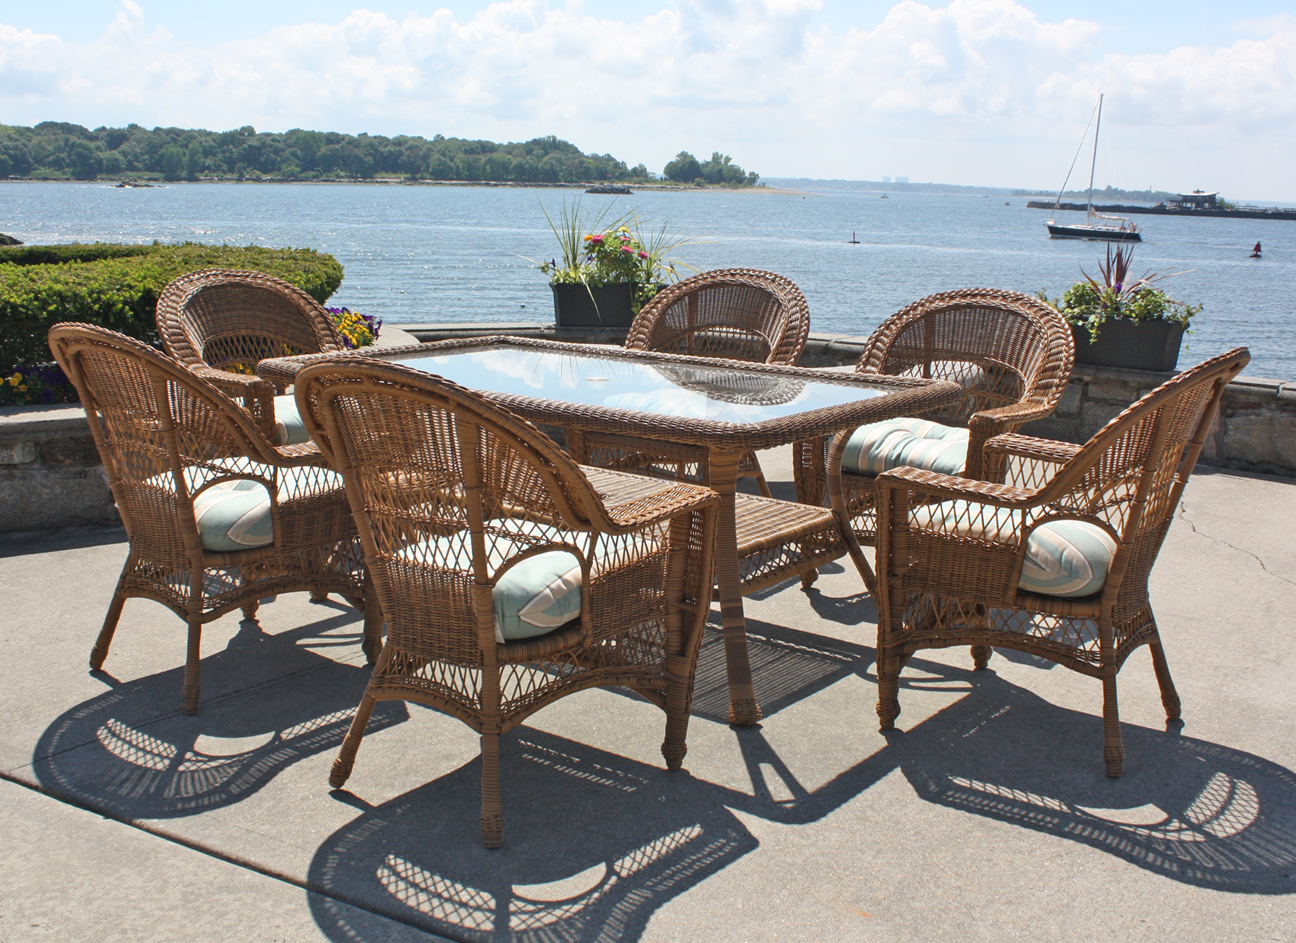 outdoor dining chairs wicker wicker kitchen chairs Cape C Outdoor Wicker Dining Chair Modern Patio Chicago